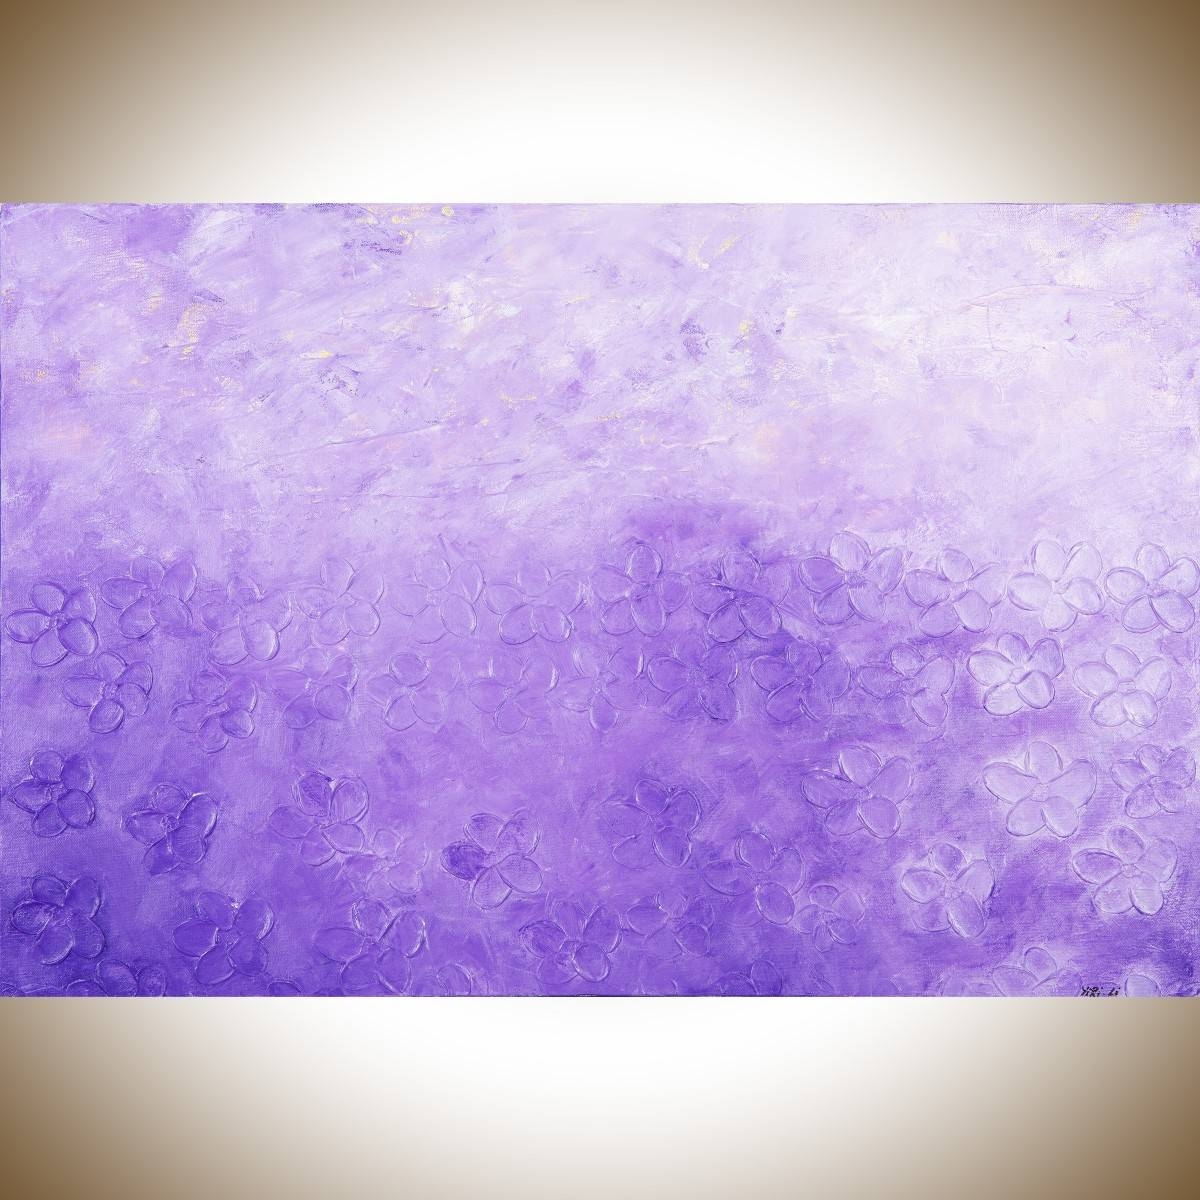 """Sunriseqiqigallery 36""""x24"""" Original Modern Abstract Wall Intended For Most Recent Purple Abstract Wall Art (View 10 of 20)"""